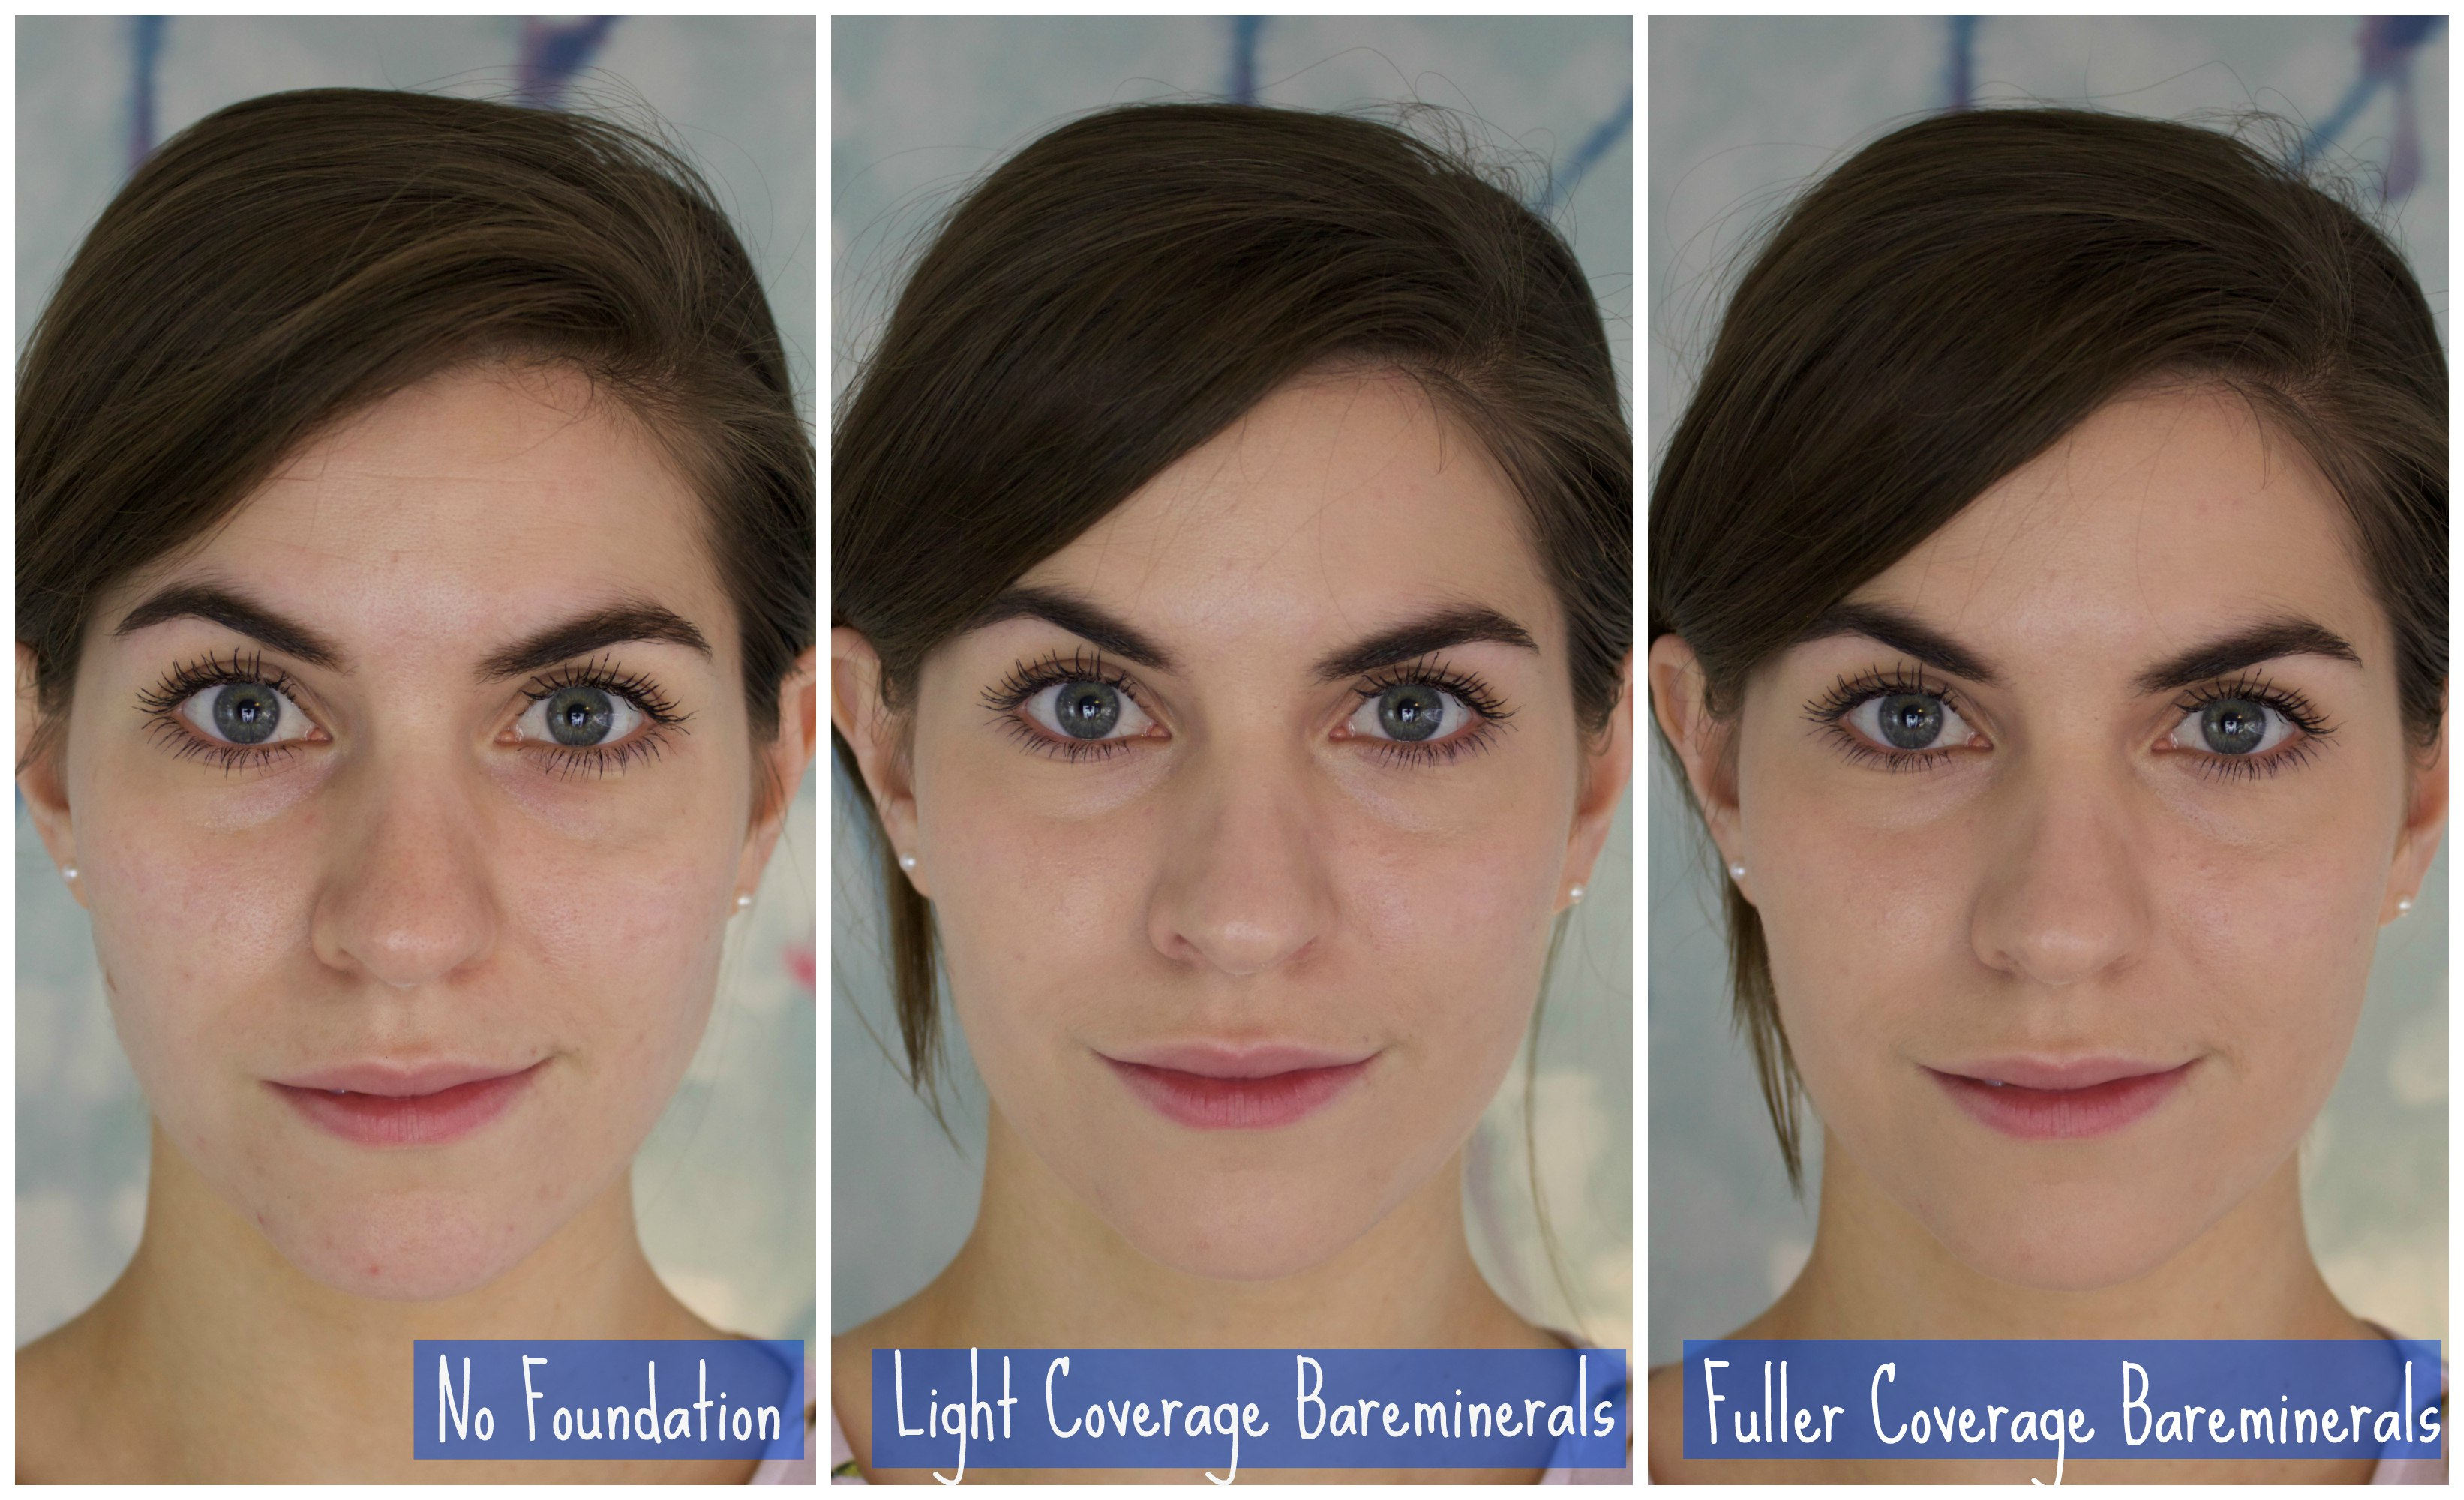 bareminerals original foundation before and after. foundation menu bareminerals original spf15. one of the best things about this product is how little you need. in light coverage photo i used a tiny before and after